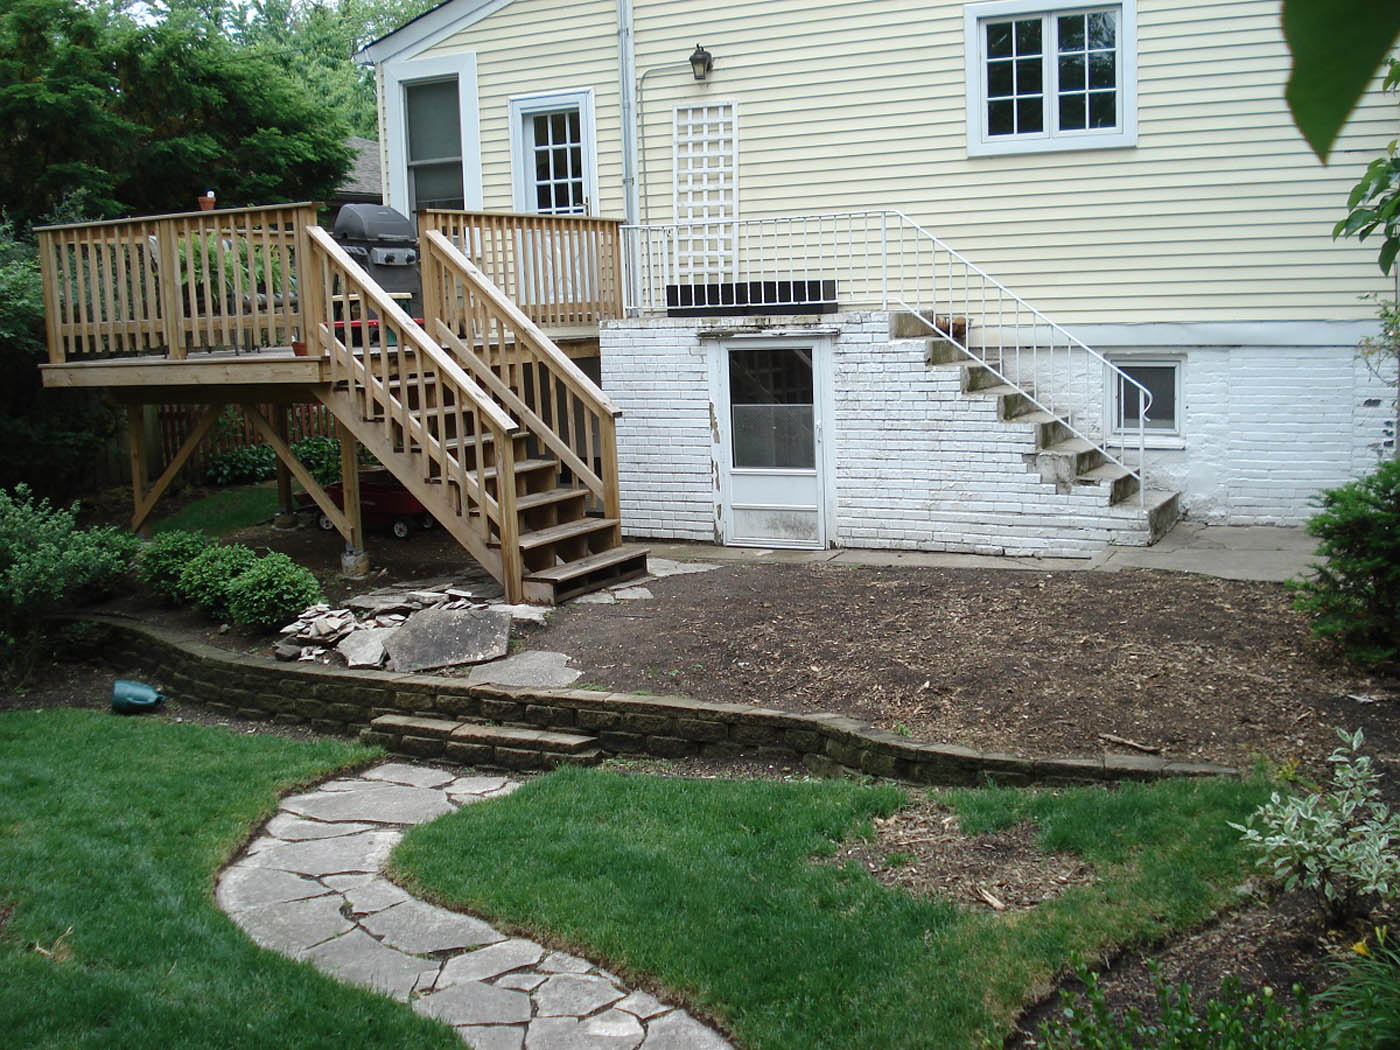 Special Back To All Case Studies Case On Same Level Perspective Landscaping How To Level A Yard Sand Drainage How To Level A Yard houzz-02 How To Level A Yard